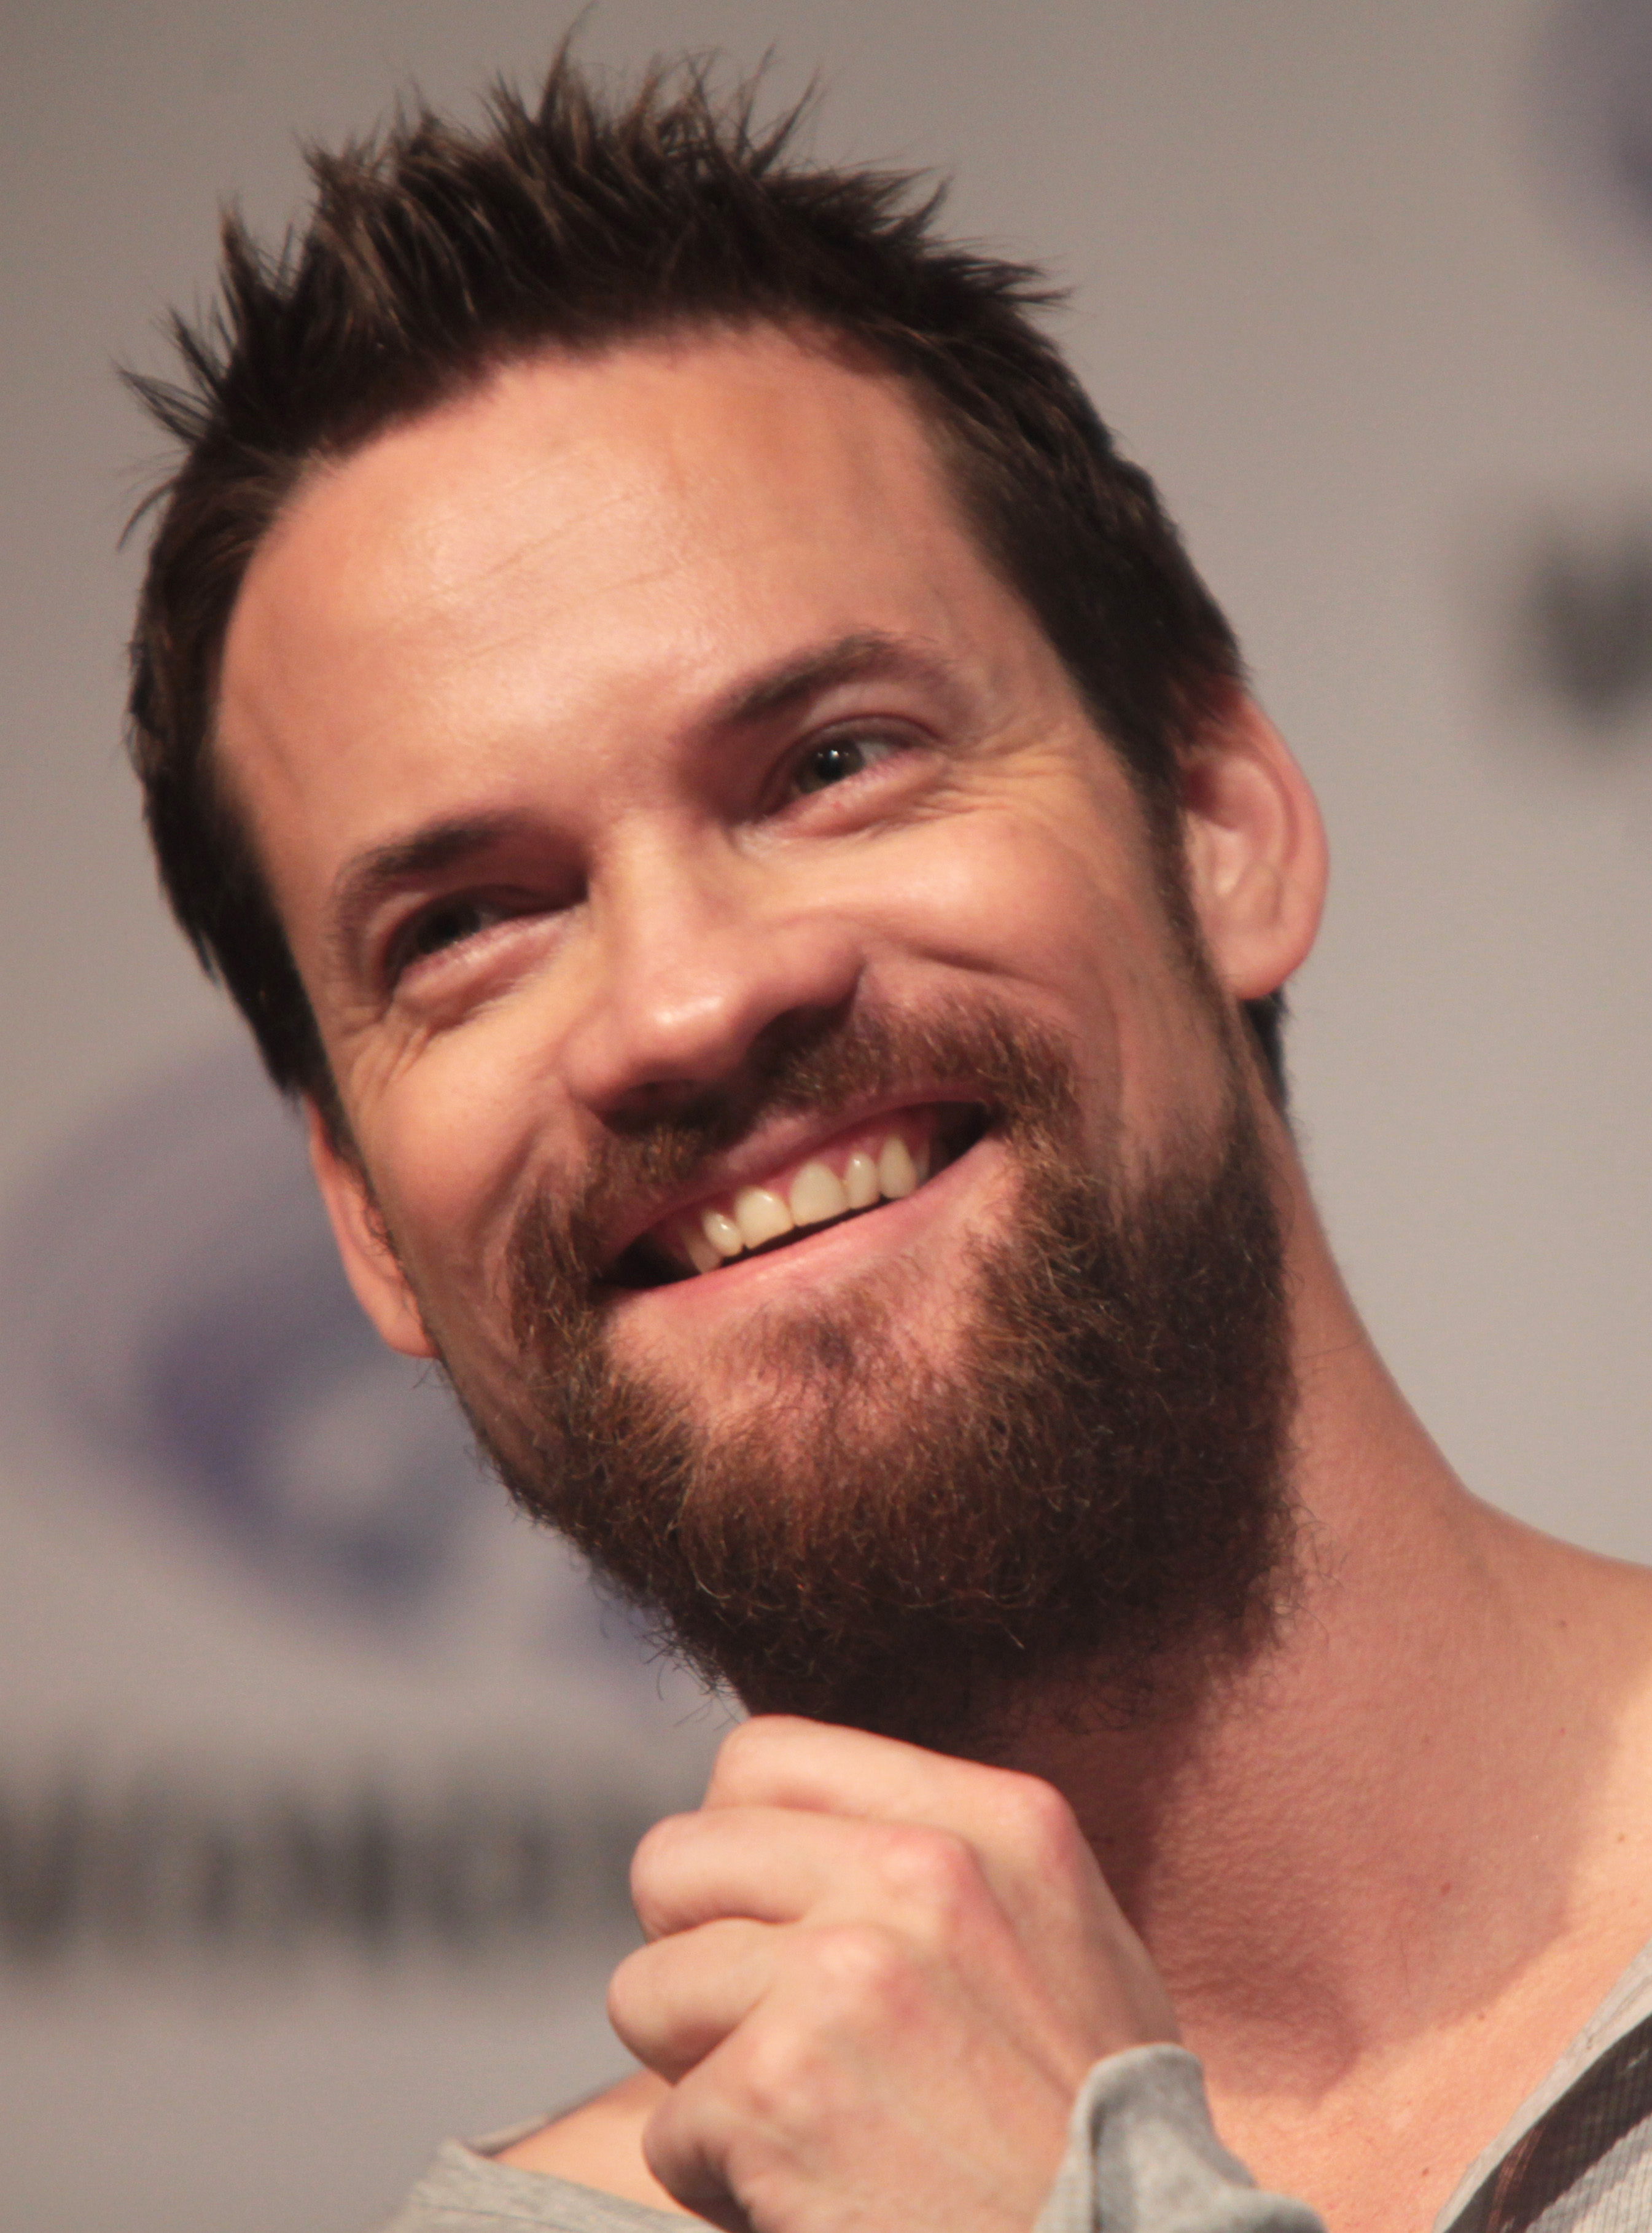 The 40-year old son of father Don Snaith and mother Leah Catherine Snaith Shane West in 2019 photo. Shane West earned a  million dollar salary - leaving the net worth at 3 million in 2019